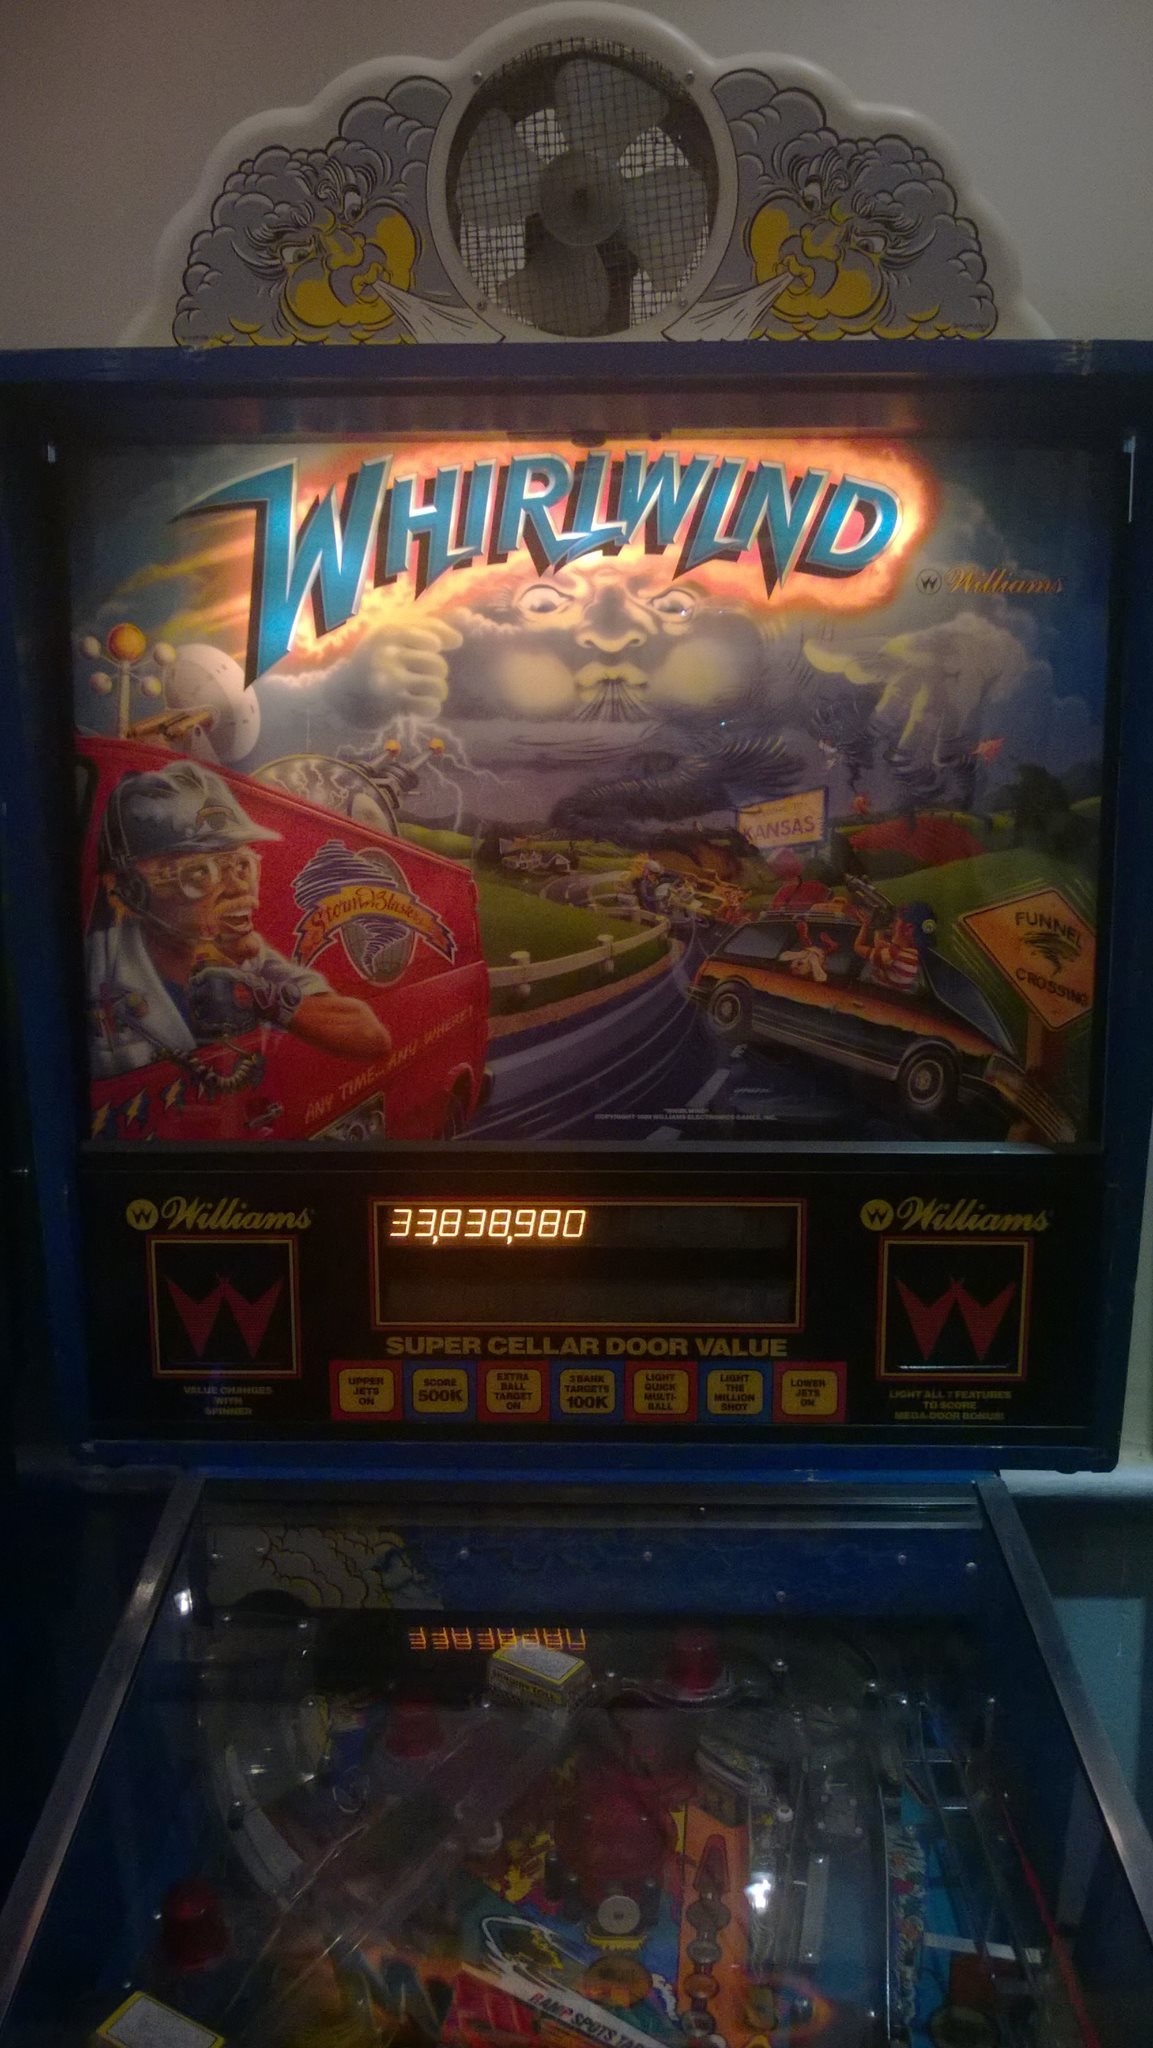 keilbaca: Whirlwind (Pinball: 3 Balls) 33,838,980 points on 2017-03-02 02:23:15